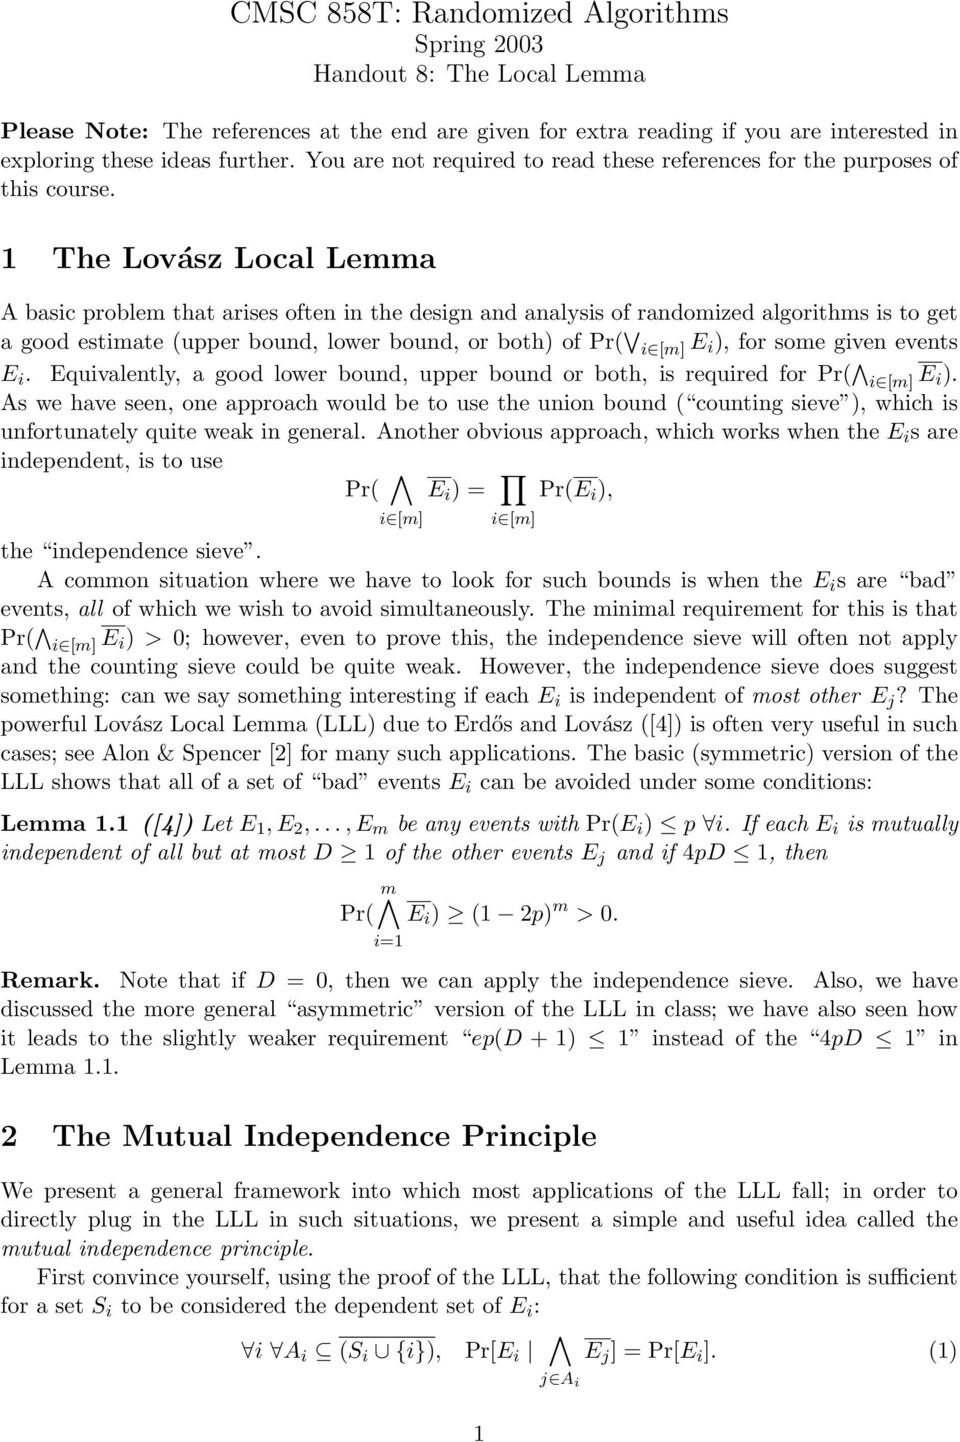 1 The Lovász Local Lemma A basic problem that arises often in the design and analysis of randomized algorithms is to get a good estimate (upper bound, lower bound, or both) of Pr( i [m] E i), for